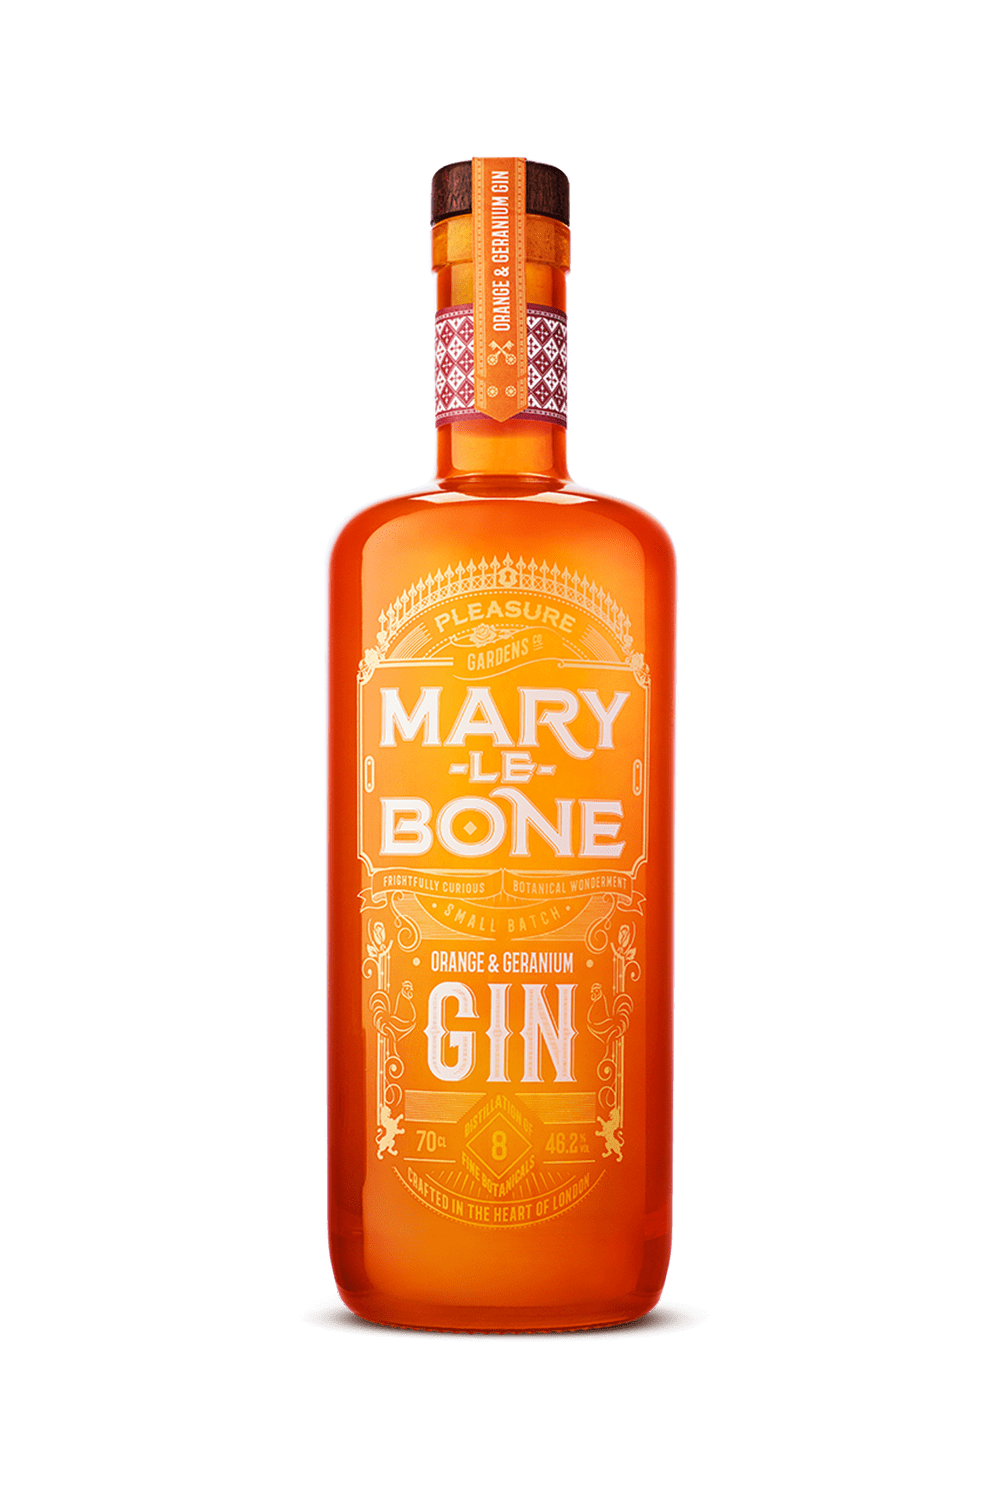 Mary Le Bone Orange & Geranium Gin